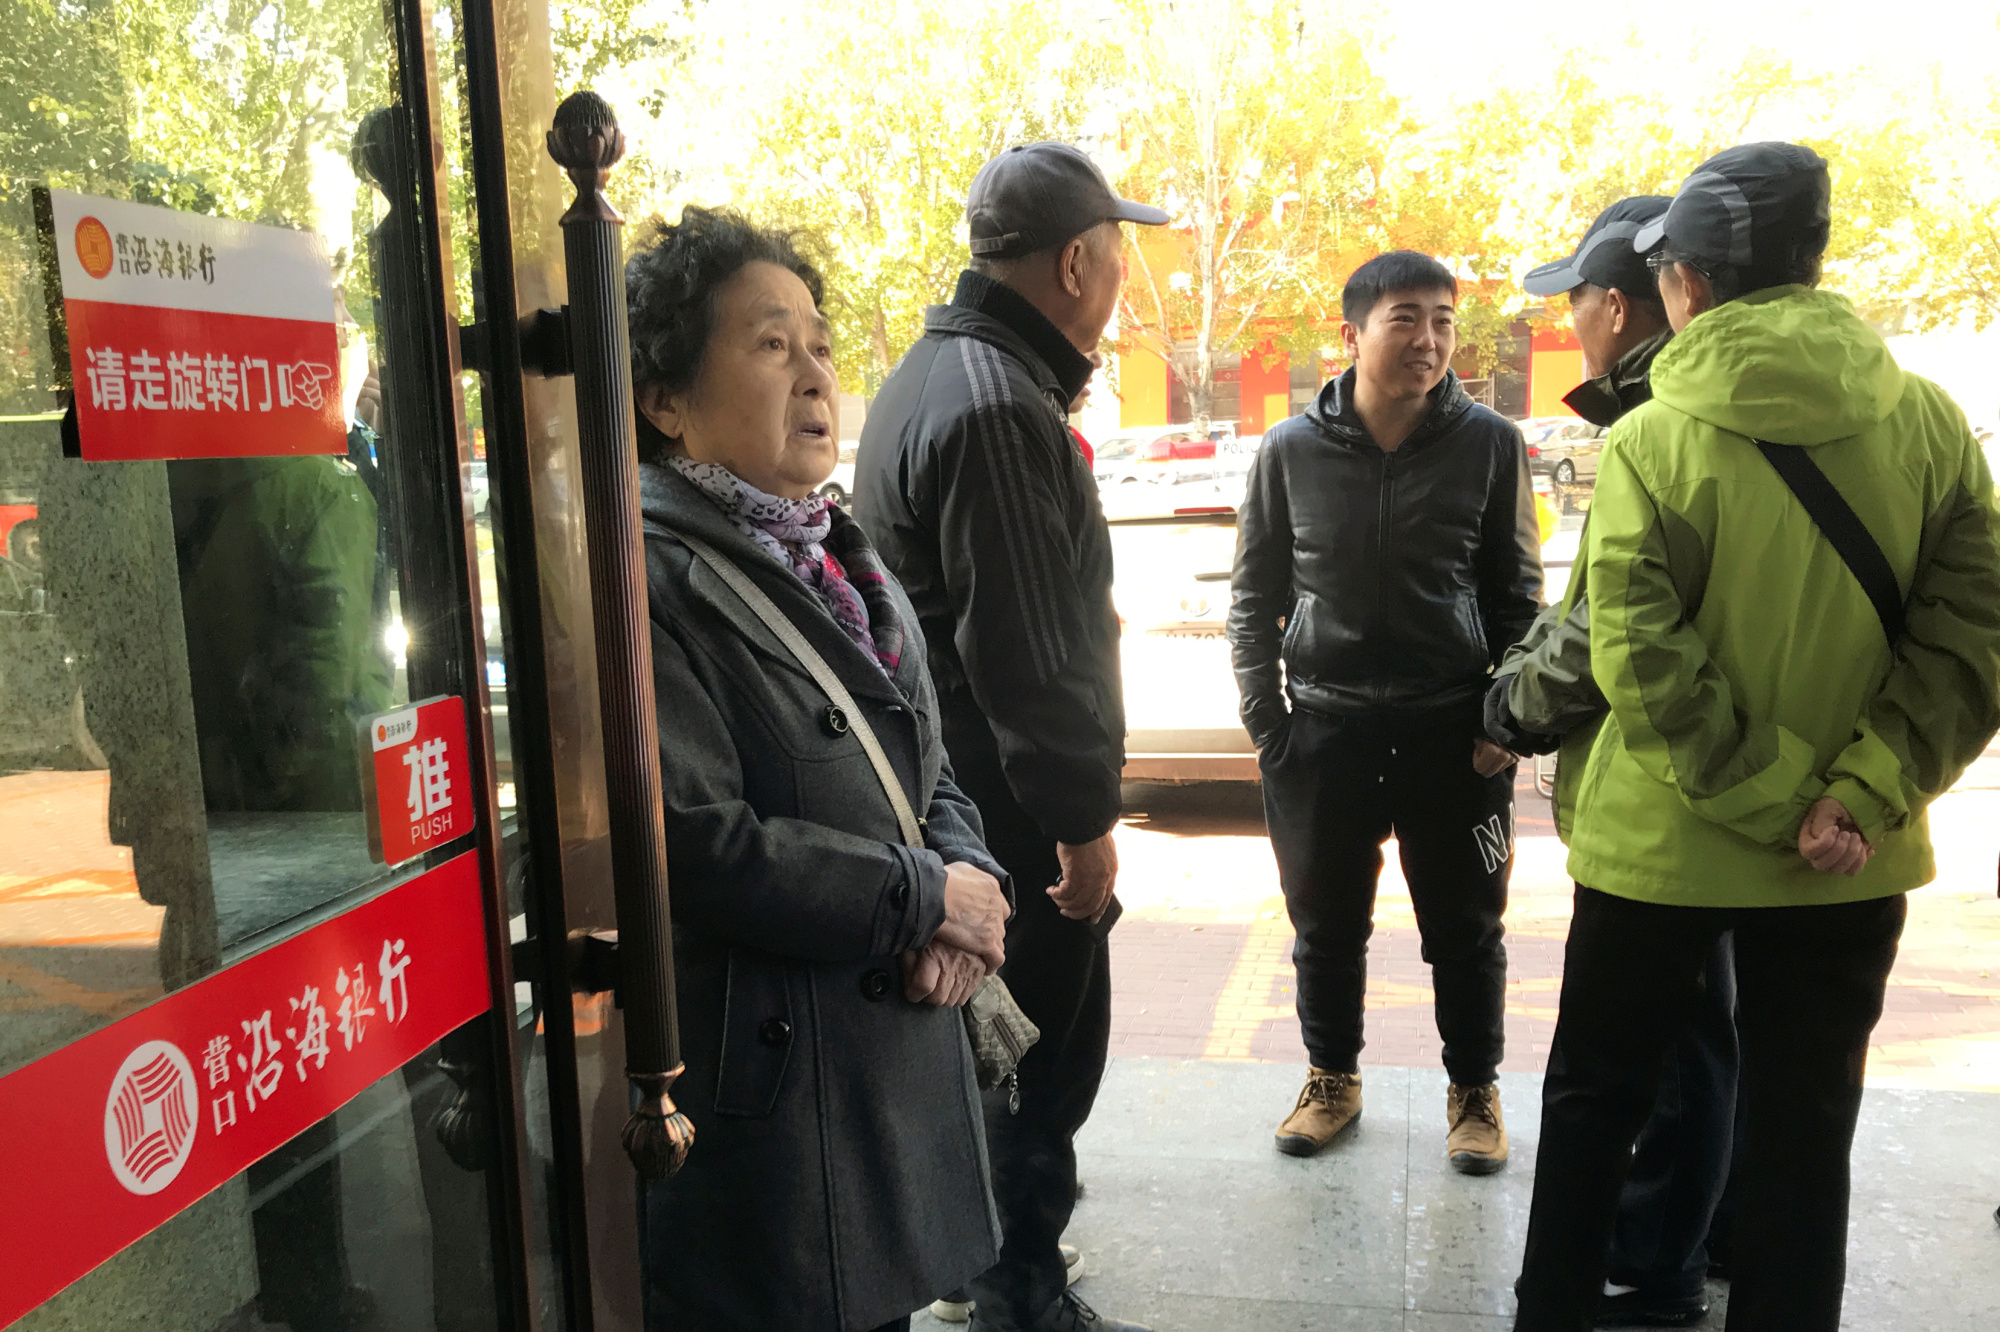 Elderly depositors seeking information about the safety of their savings gather at a branch of Yingkou Coastal Bank in Yingkou, Liaoning province, China, on Nov. 8. | REUTERS